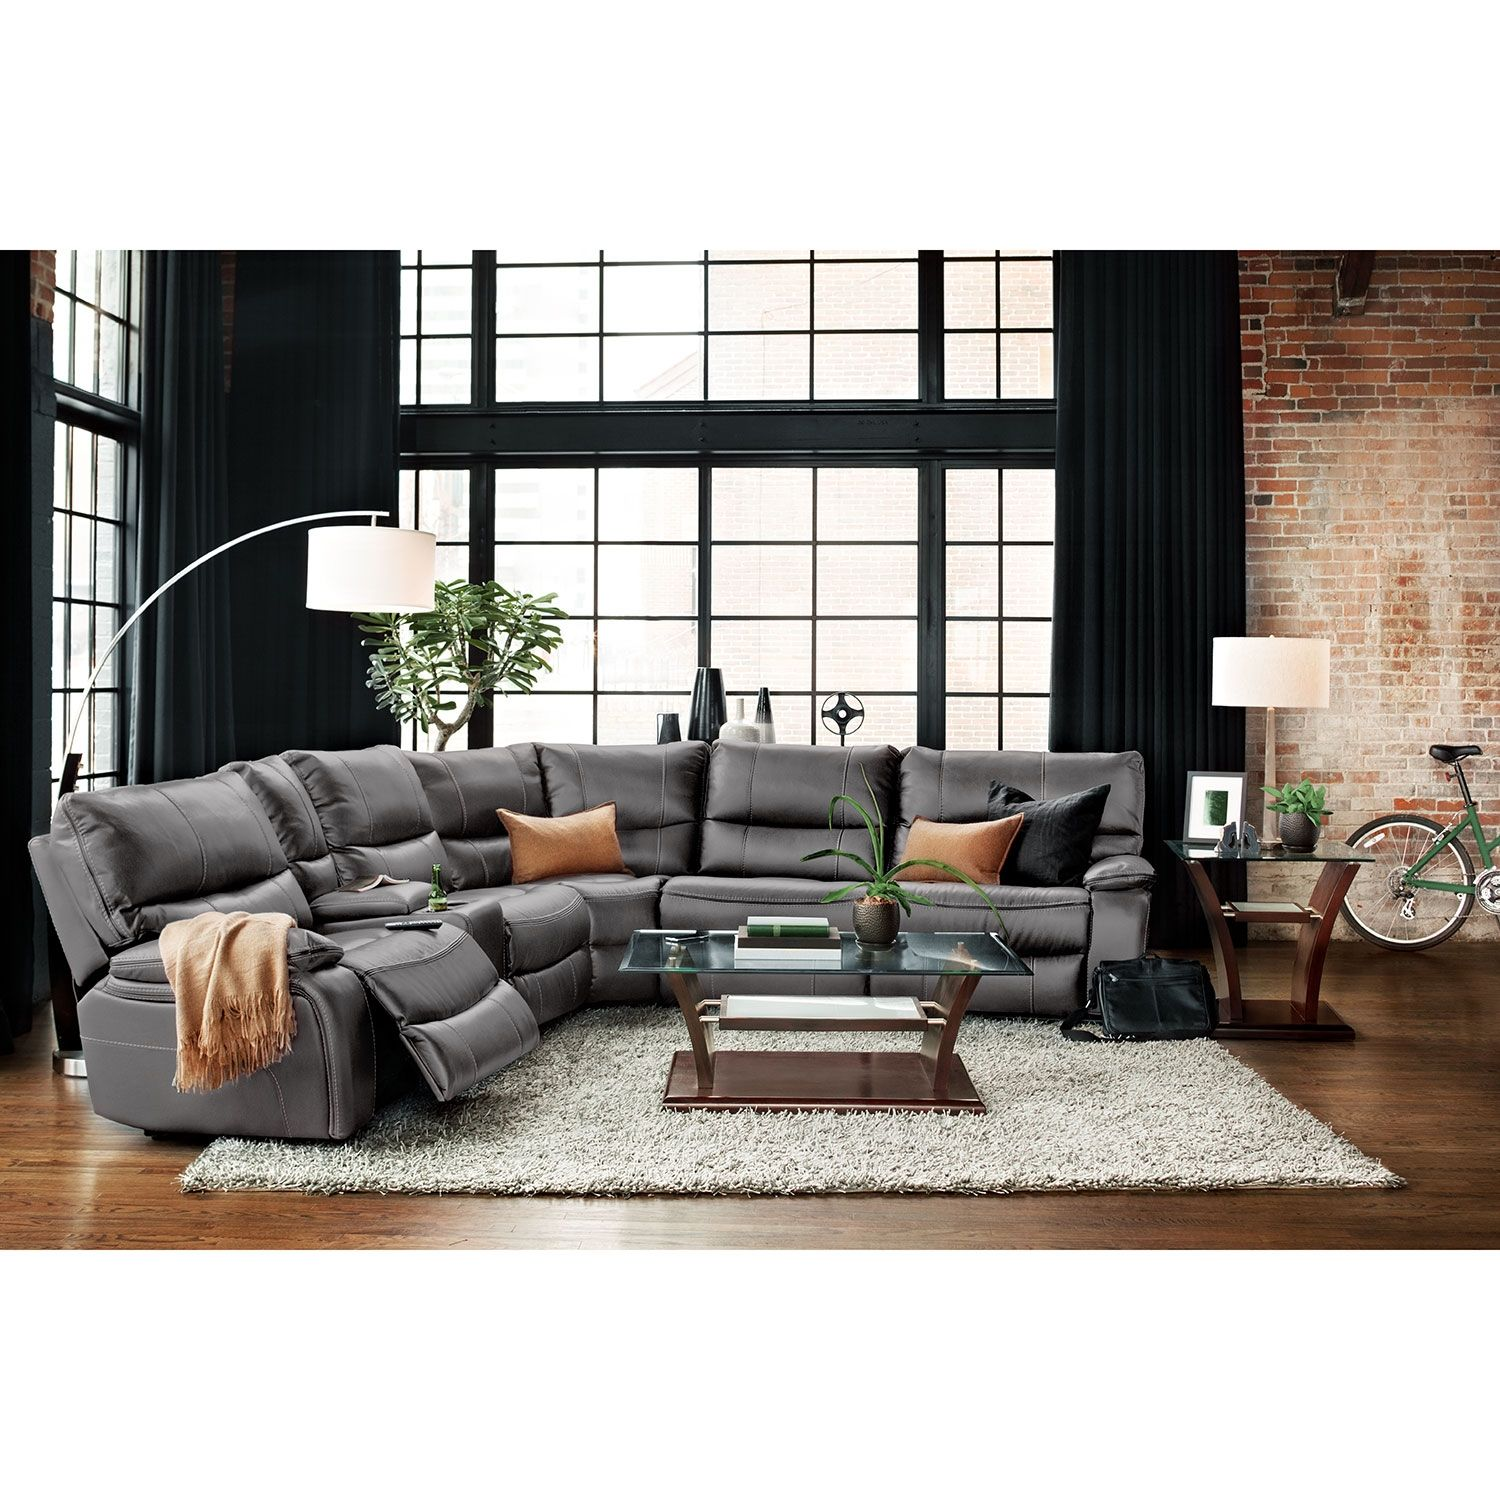 Orlando 6Piece Power Reclining Sectional with 3 Reclining